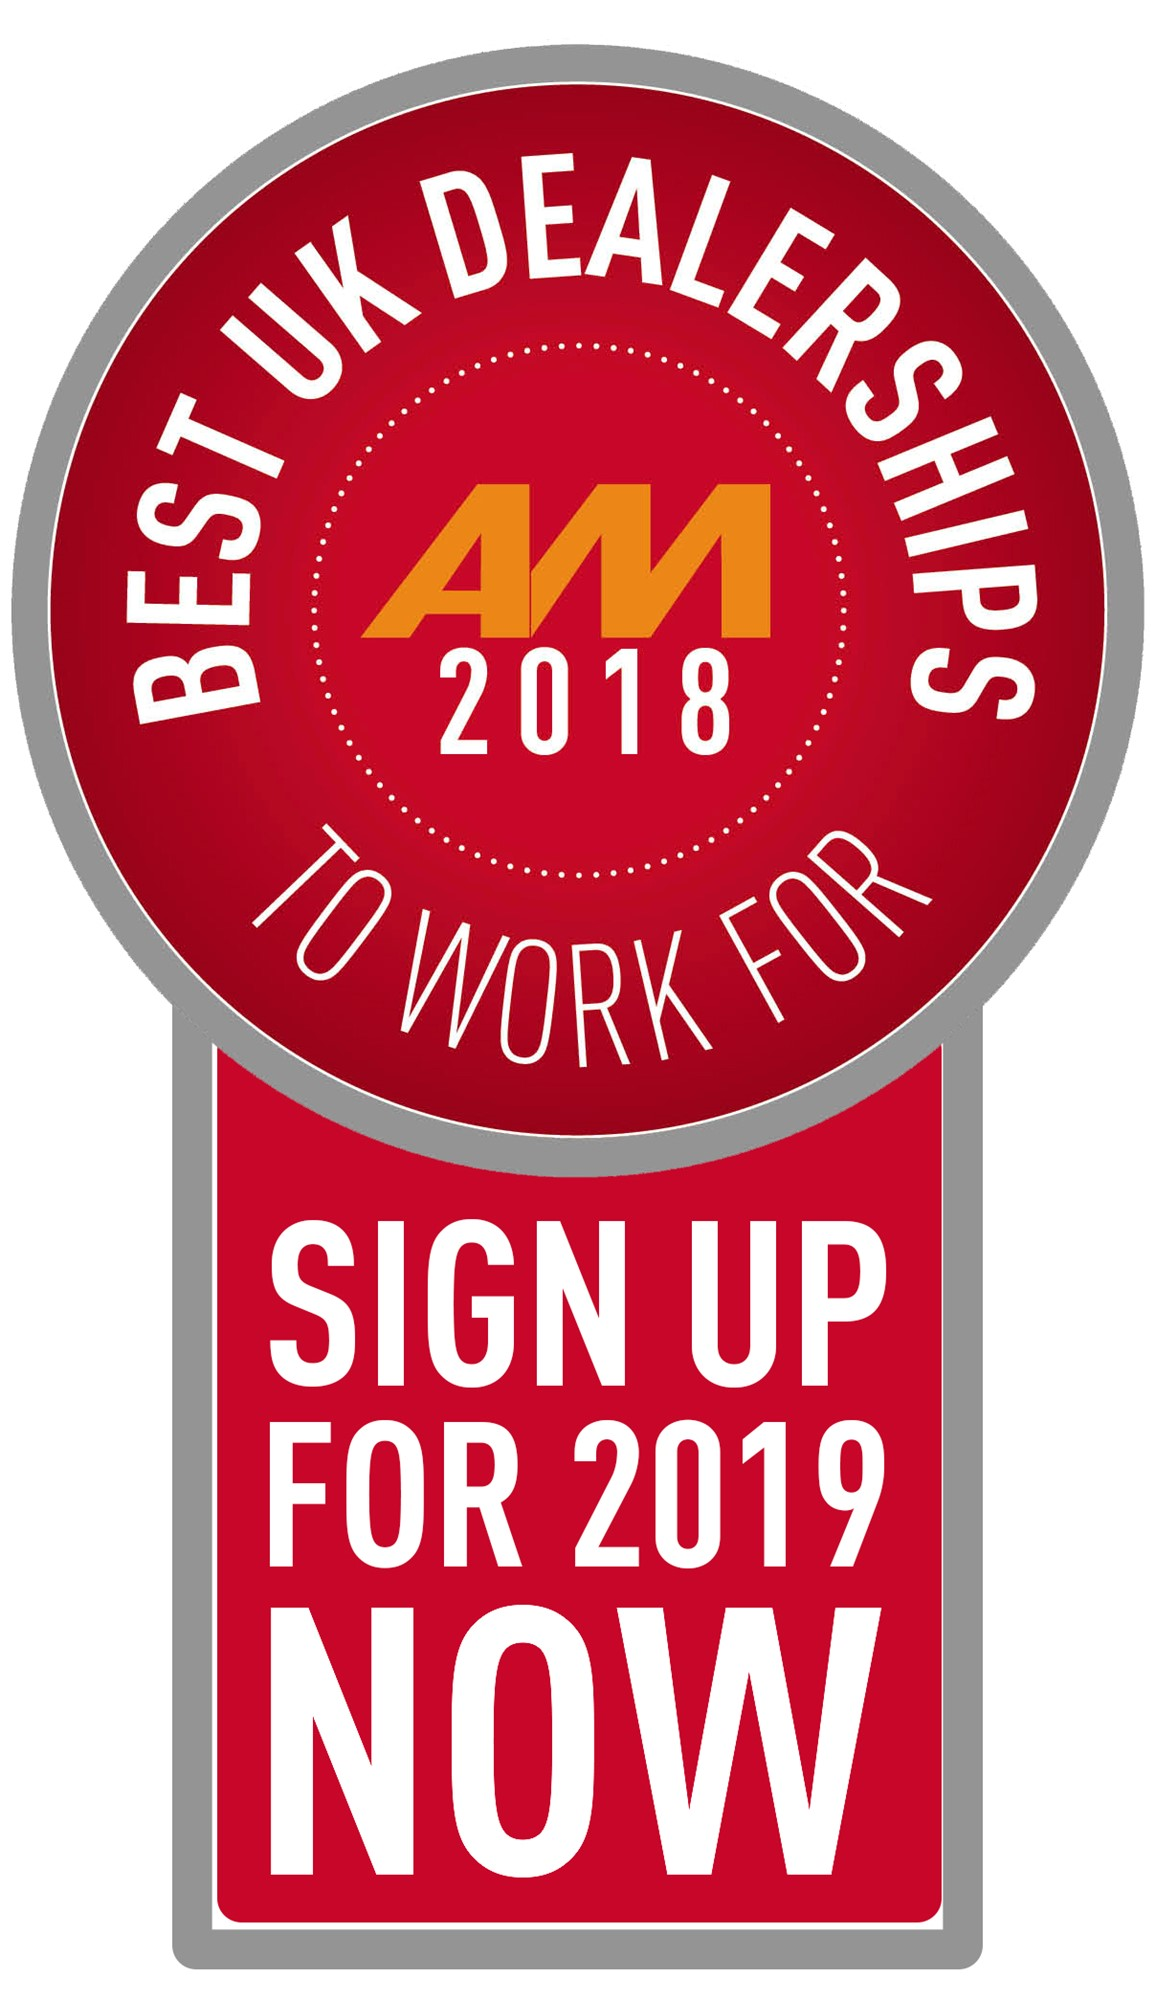 AM Best UK Dealerships to Work For - sign up for 2019 now